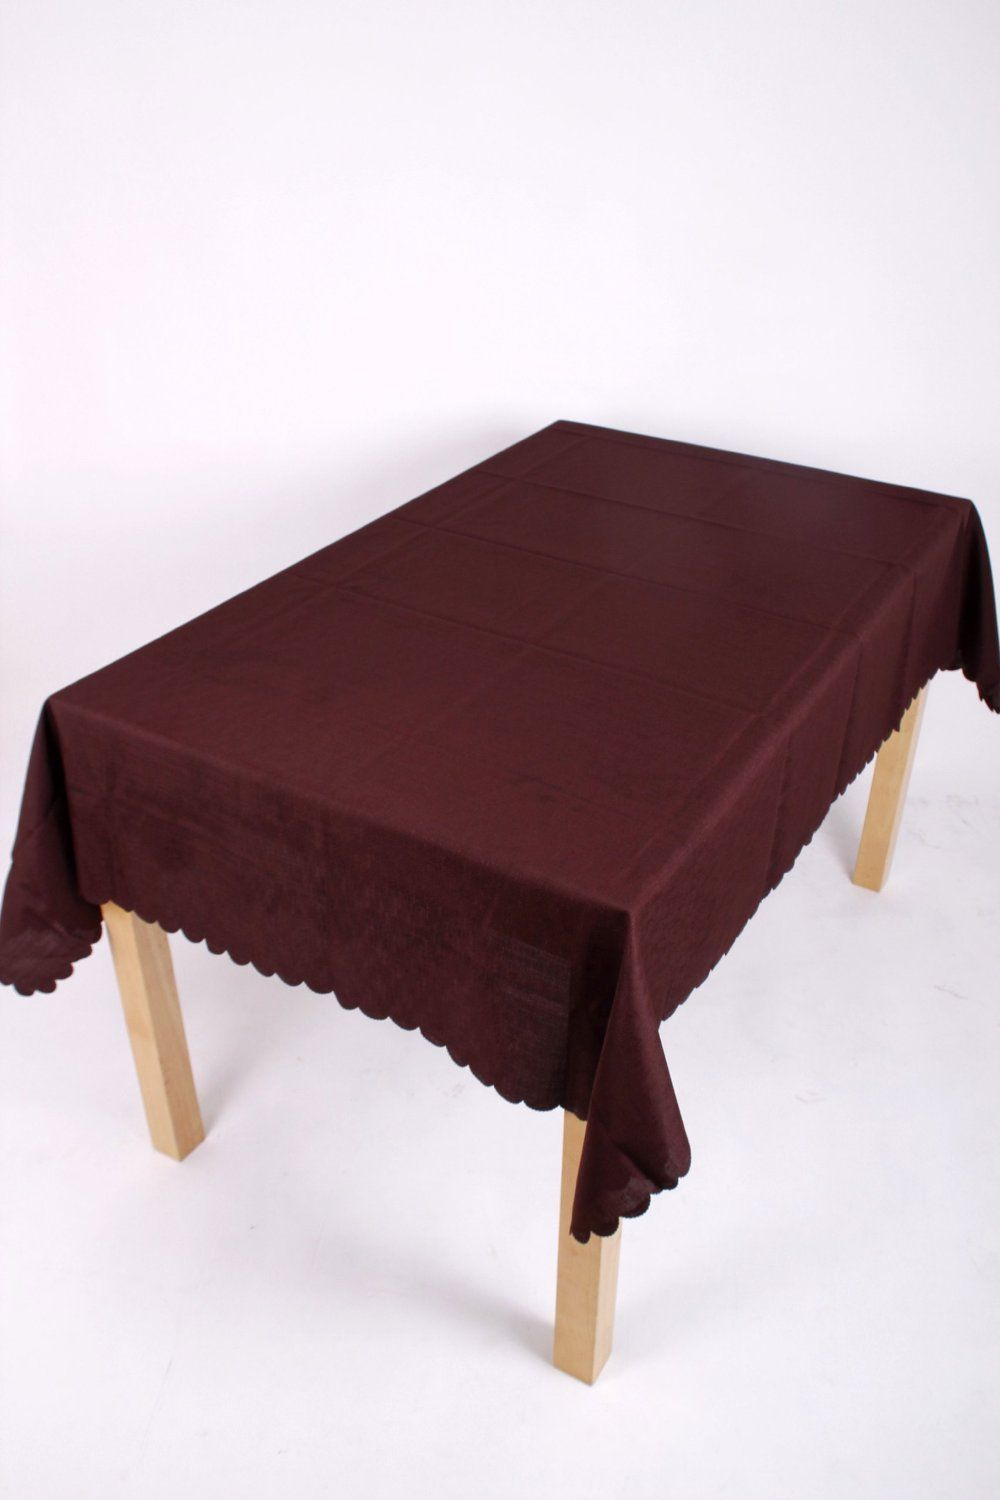 Shell Tablecloth Chocolate Brown 137x178cm Oval